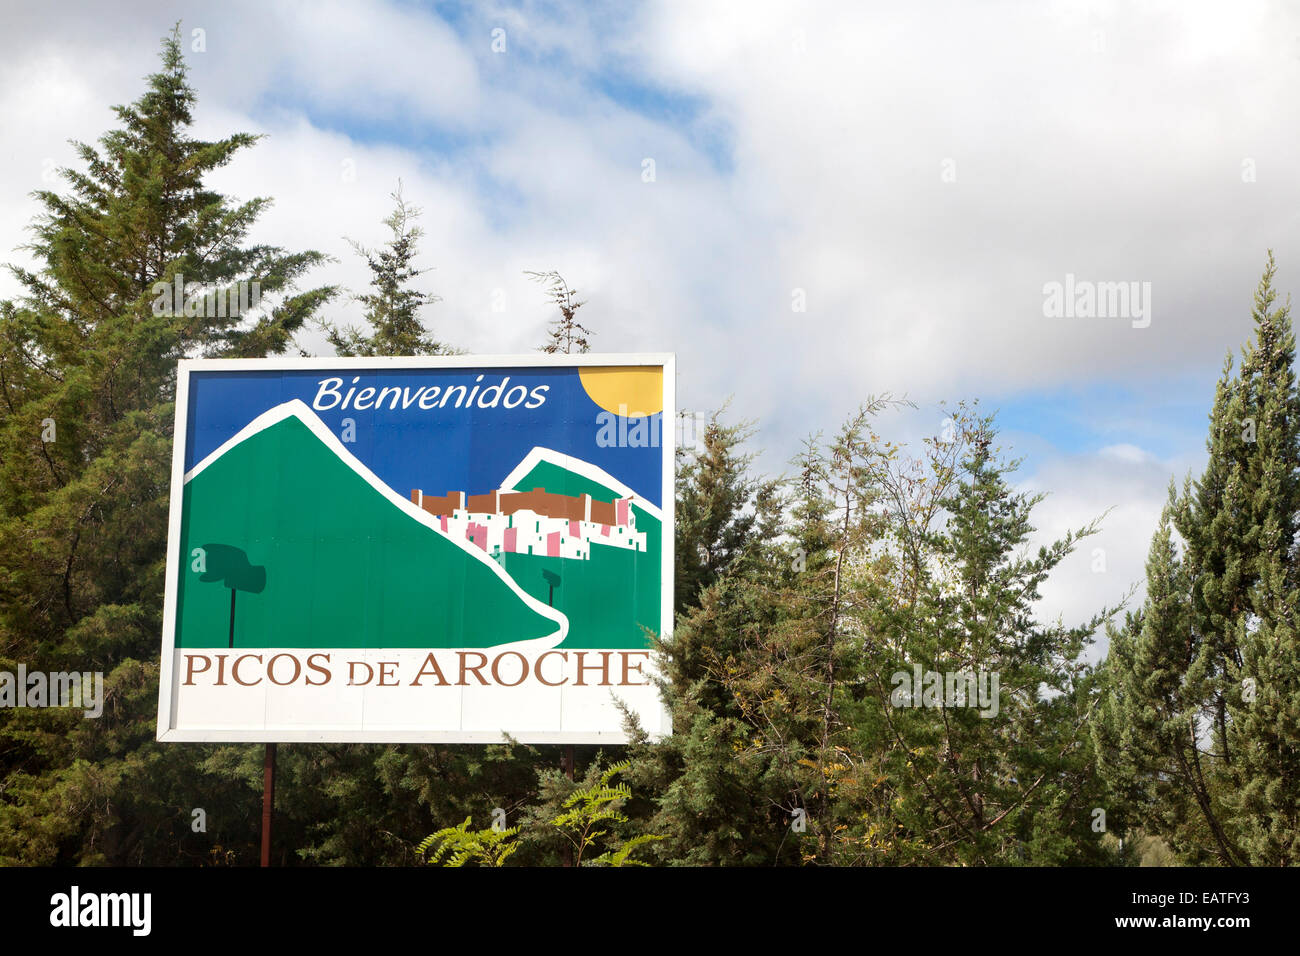 Welcome sign for the Picos de Aroche, Aroche, Sierra de Aracena, Huelva province, Spain - Stock Image